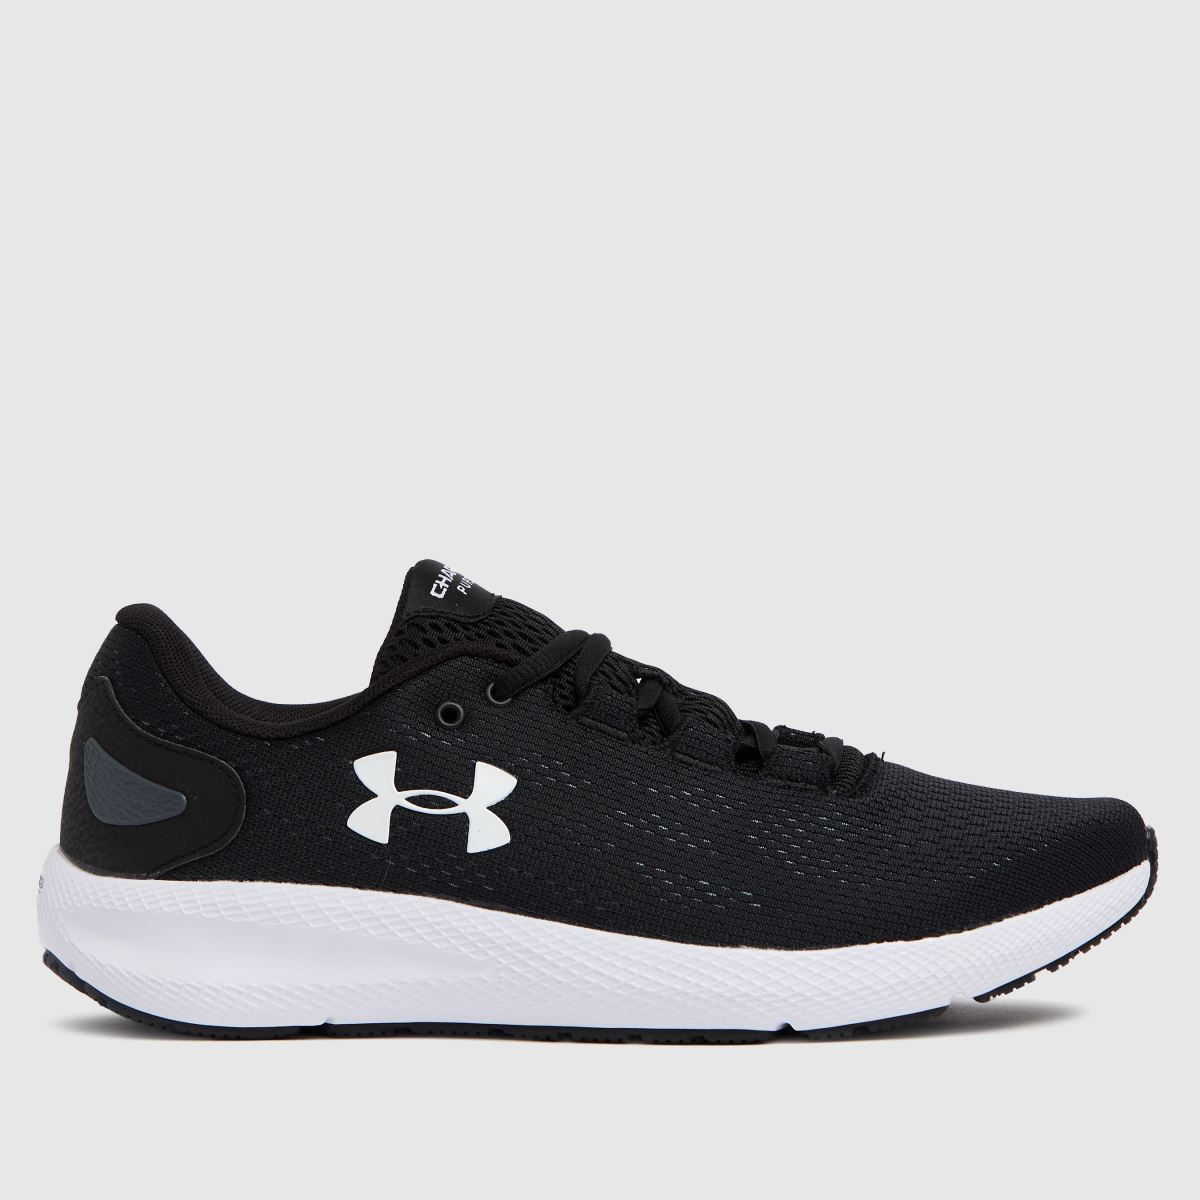 Under Armour Black & White Charged Pursuit 2 Trainers